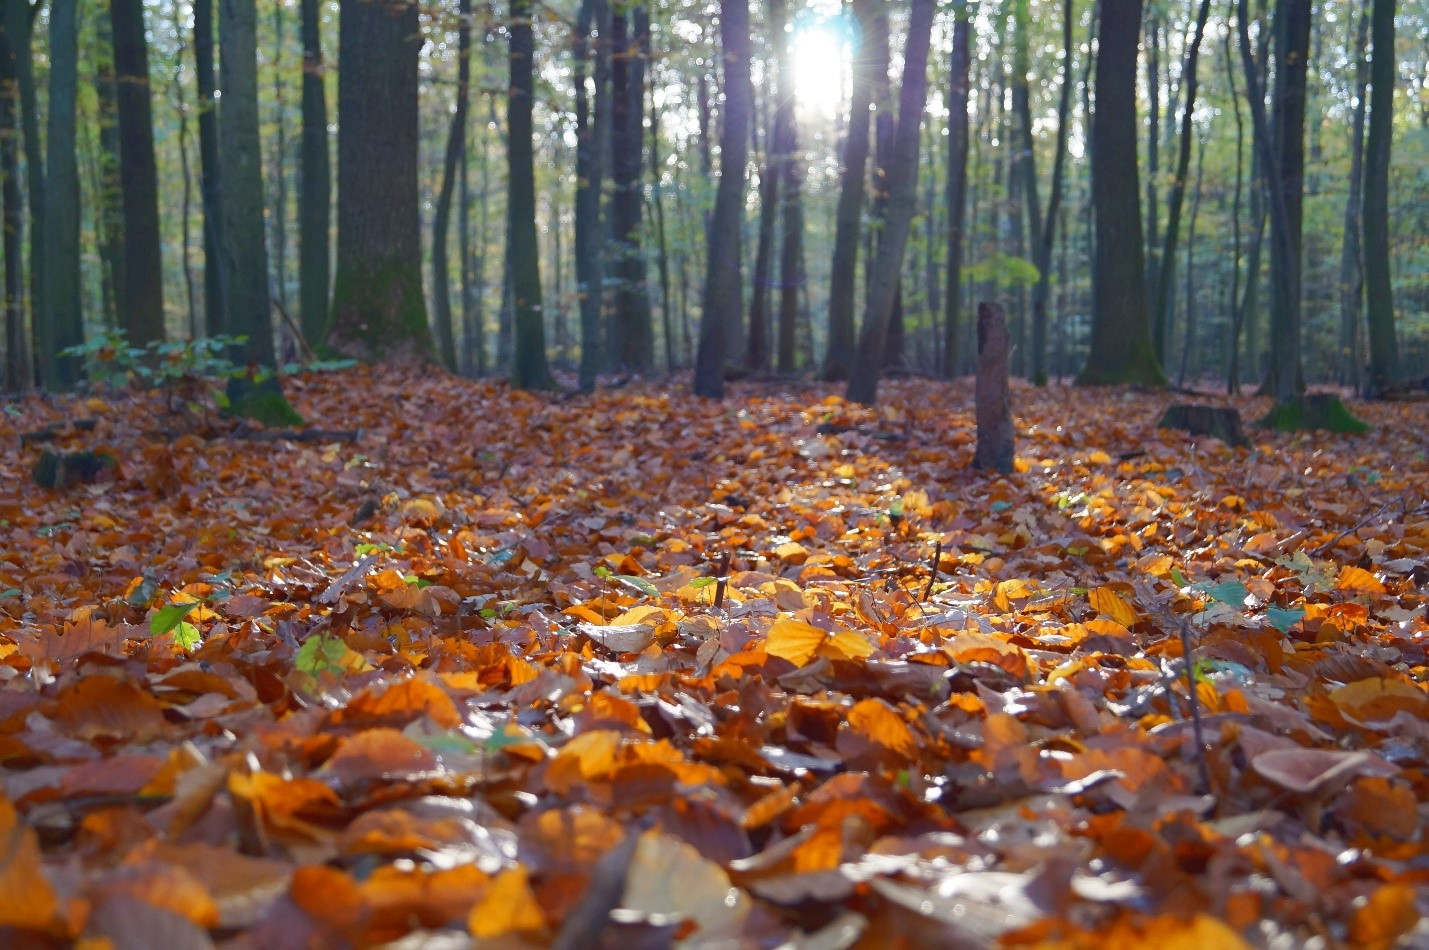 Tree Removal Service Near Me 32459 - Autum Leaves Ground Cover IMG